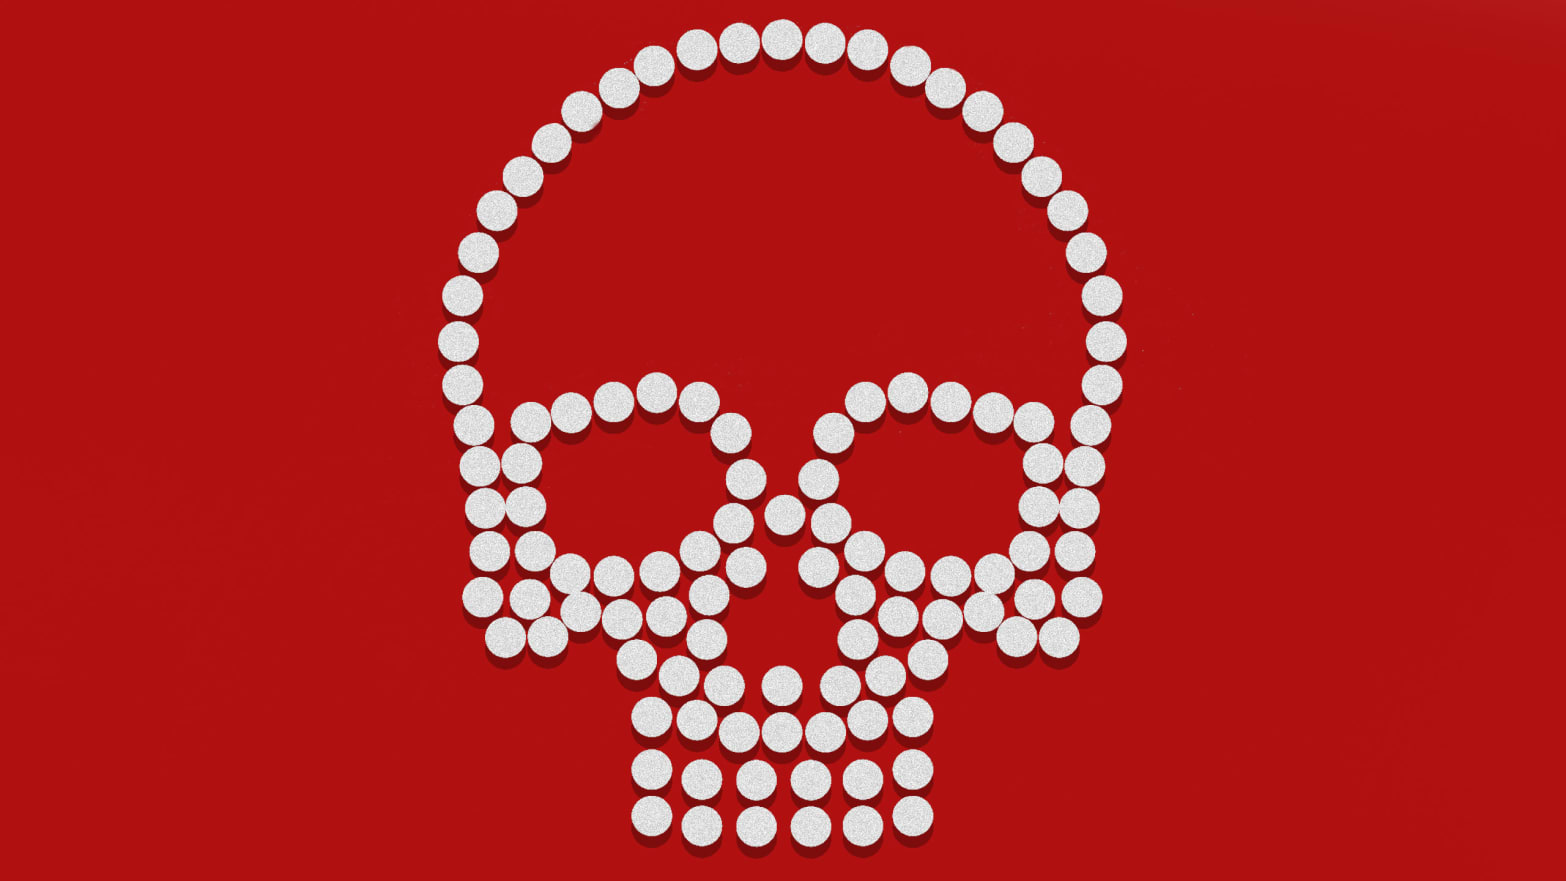 image of skull created by pills opioid addiction disorder addiction addictive personality peter grinspoon harvard epidemic